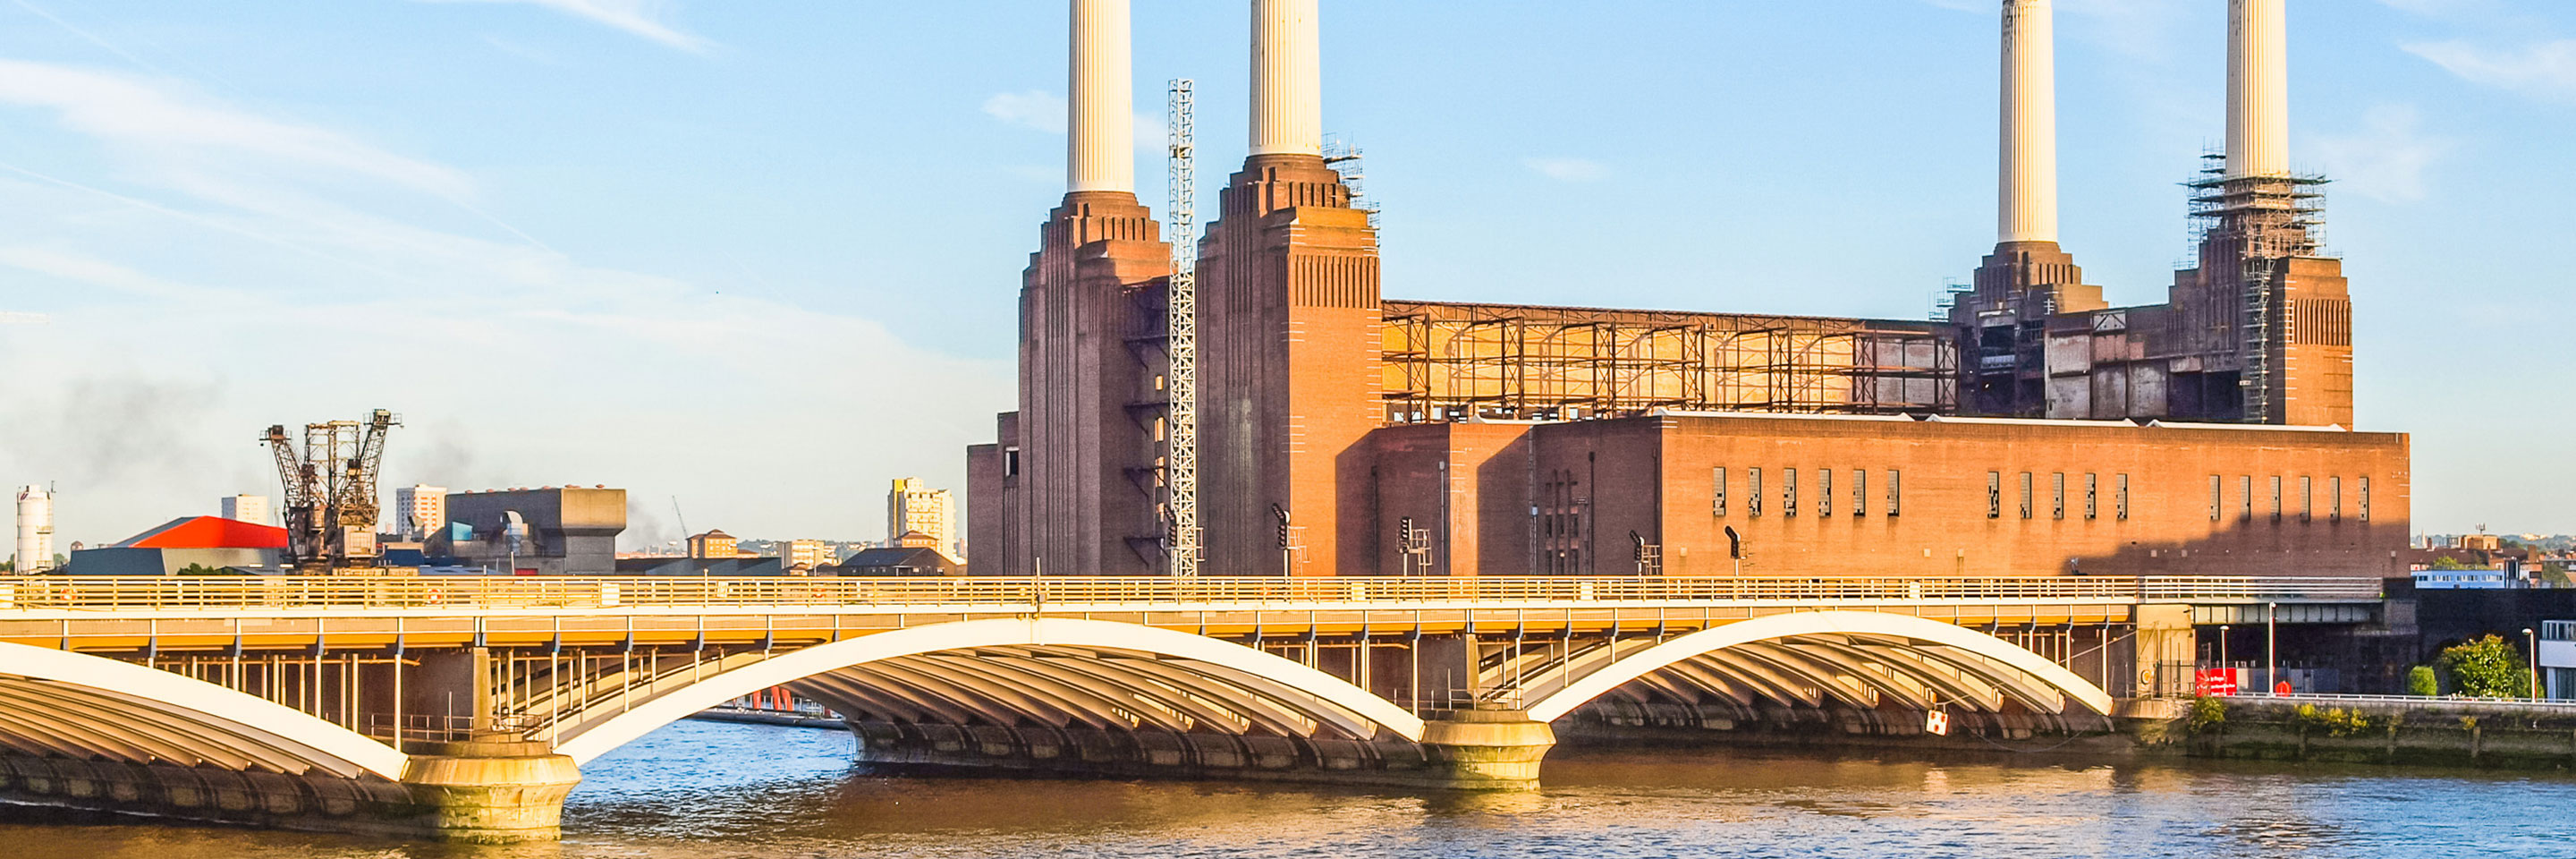 Battersea Power Plant and Battersea Bridge